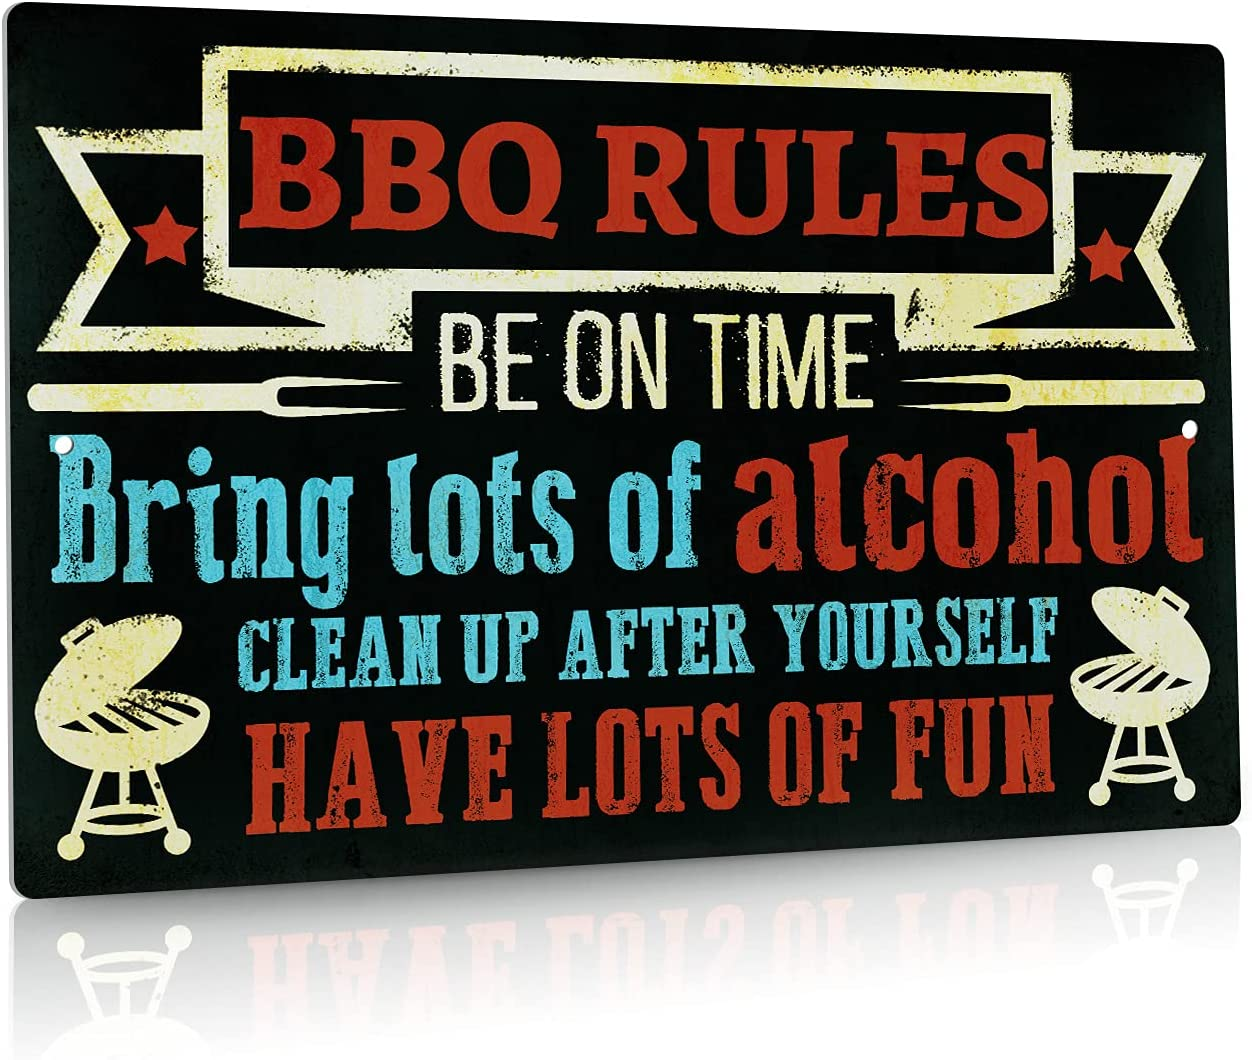 Putuo Decor BBQ Rules Decorations, Rustic Kitchen Wall Sign for Bar, Patio, Porch, Restaurant, 12x8 Inches Aluminum Metal Sign